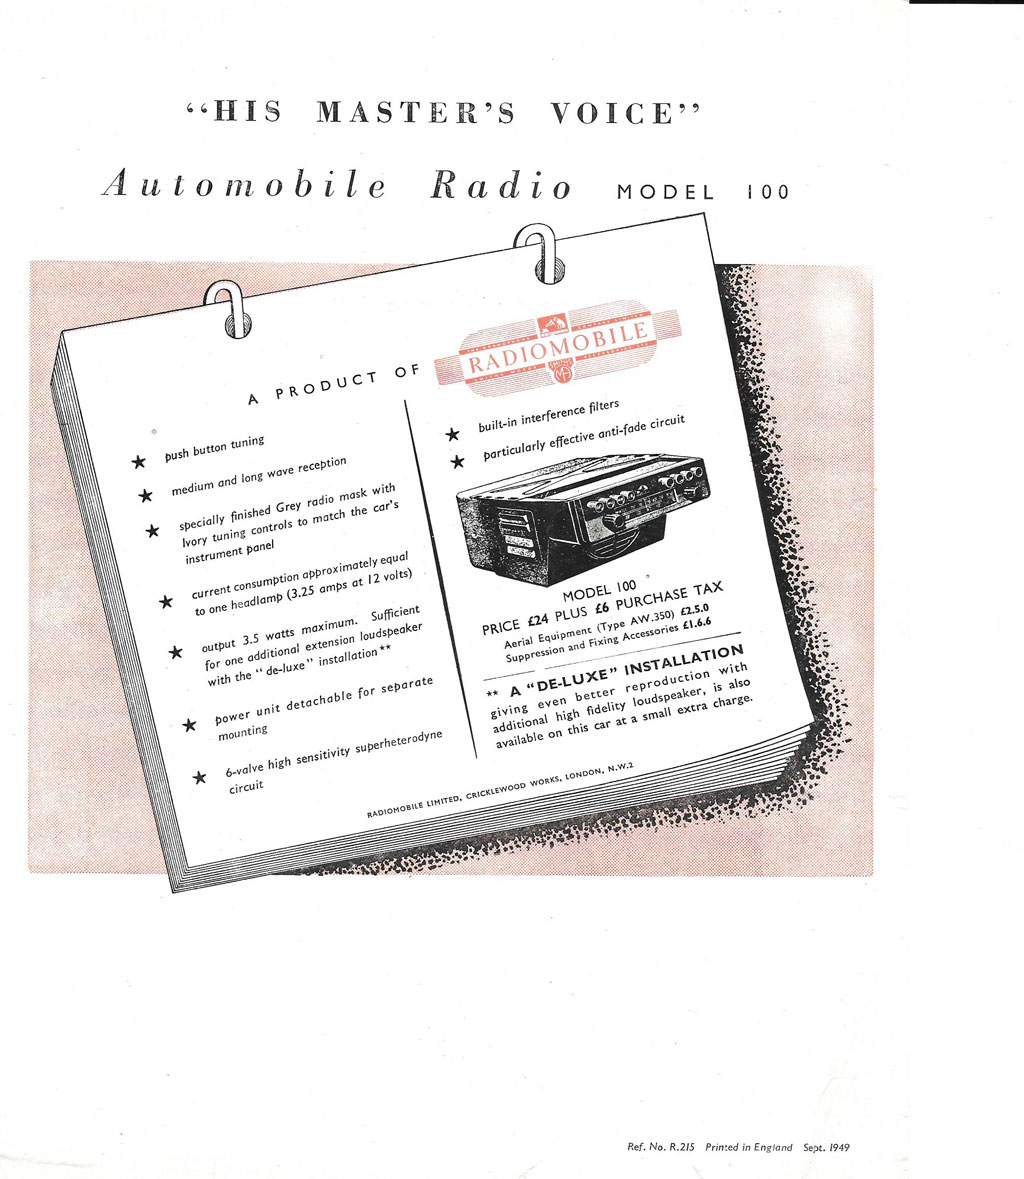 Radiomobile Model 100 Brochure